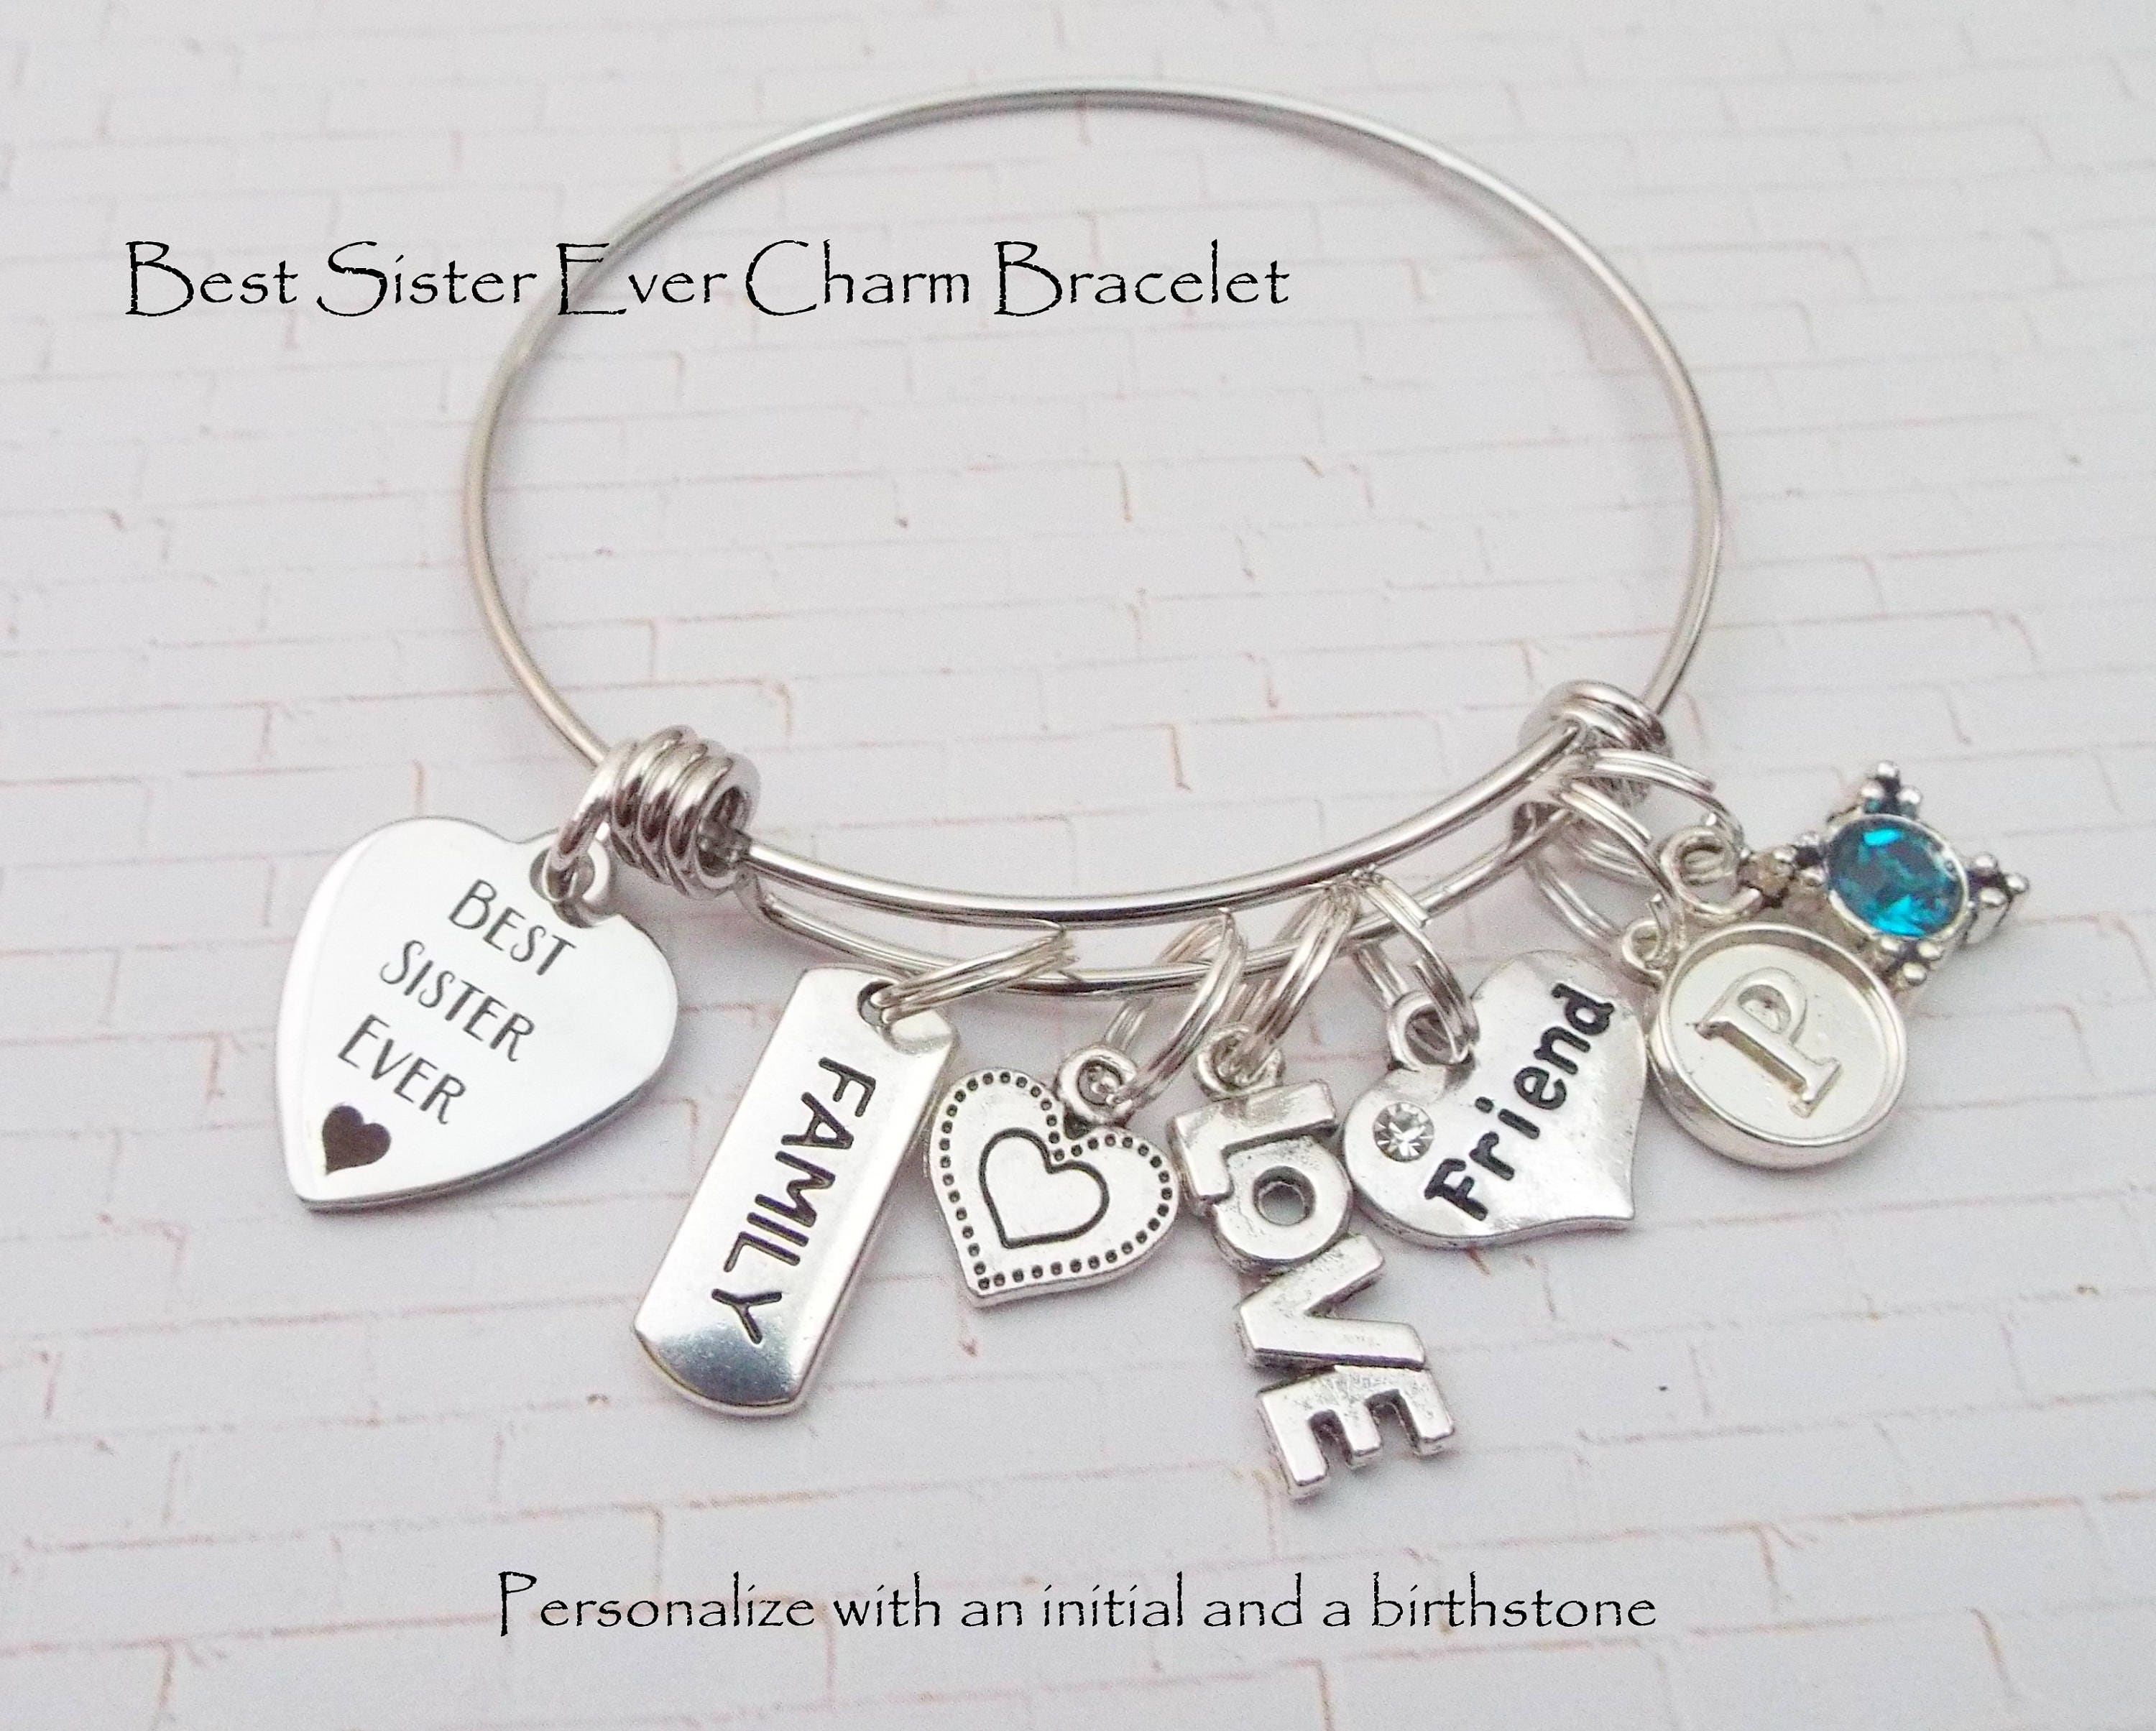 Gift for sister sister gift sister charm bracelet sister gift for sister sister gift sister charm bracelet sister christmas gift sister birthday gift personalized gift gift for her sisters negle Gallery